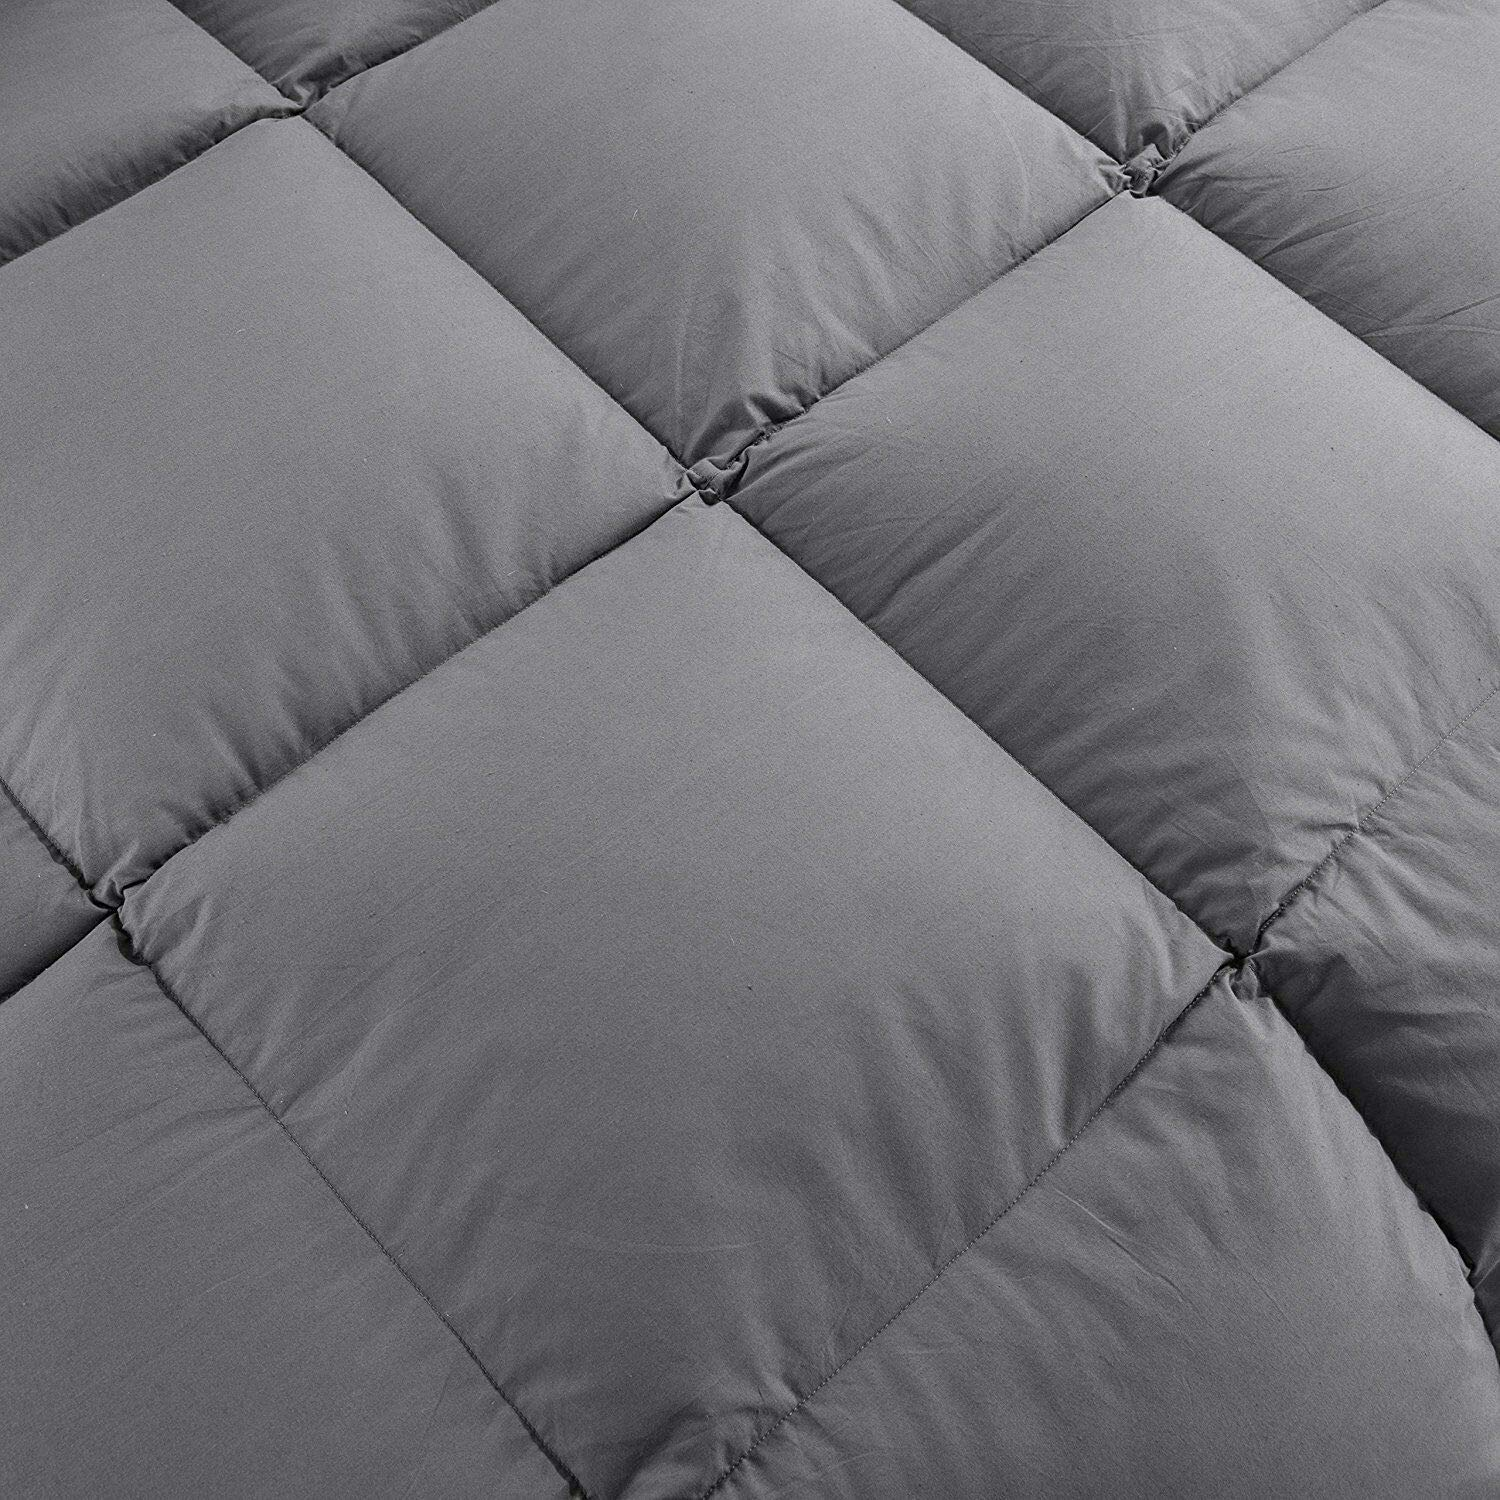 HHsw Household Bedding Quilt Duvet Inserts Duvet Inserted with Corner Label Summer Cooling 2100 Series, Fluffy Reversible Hotel Series